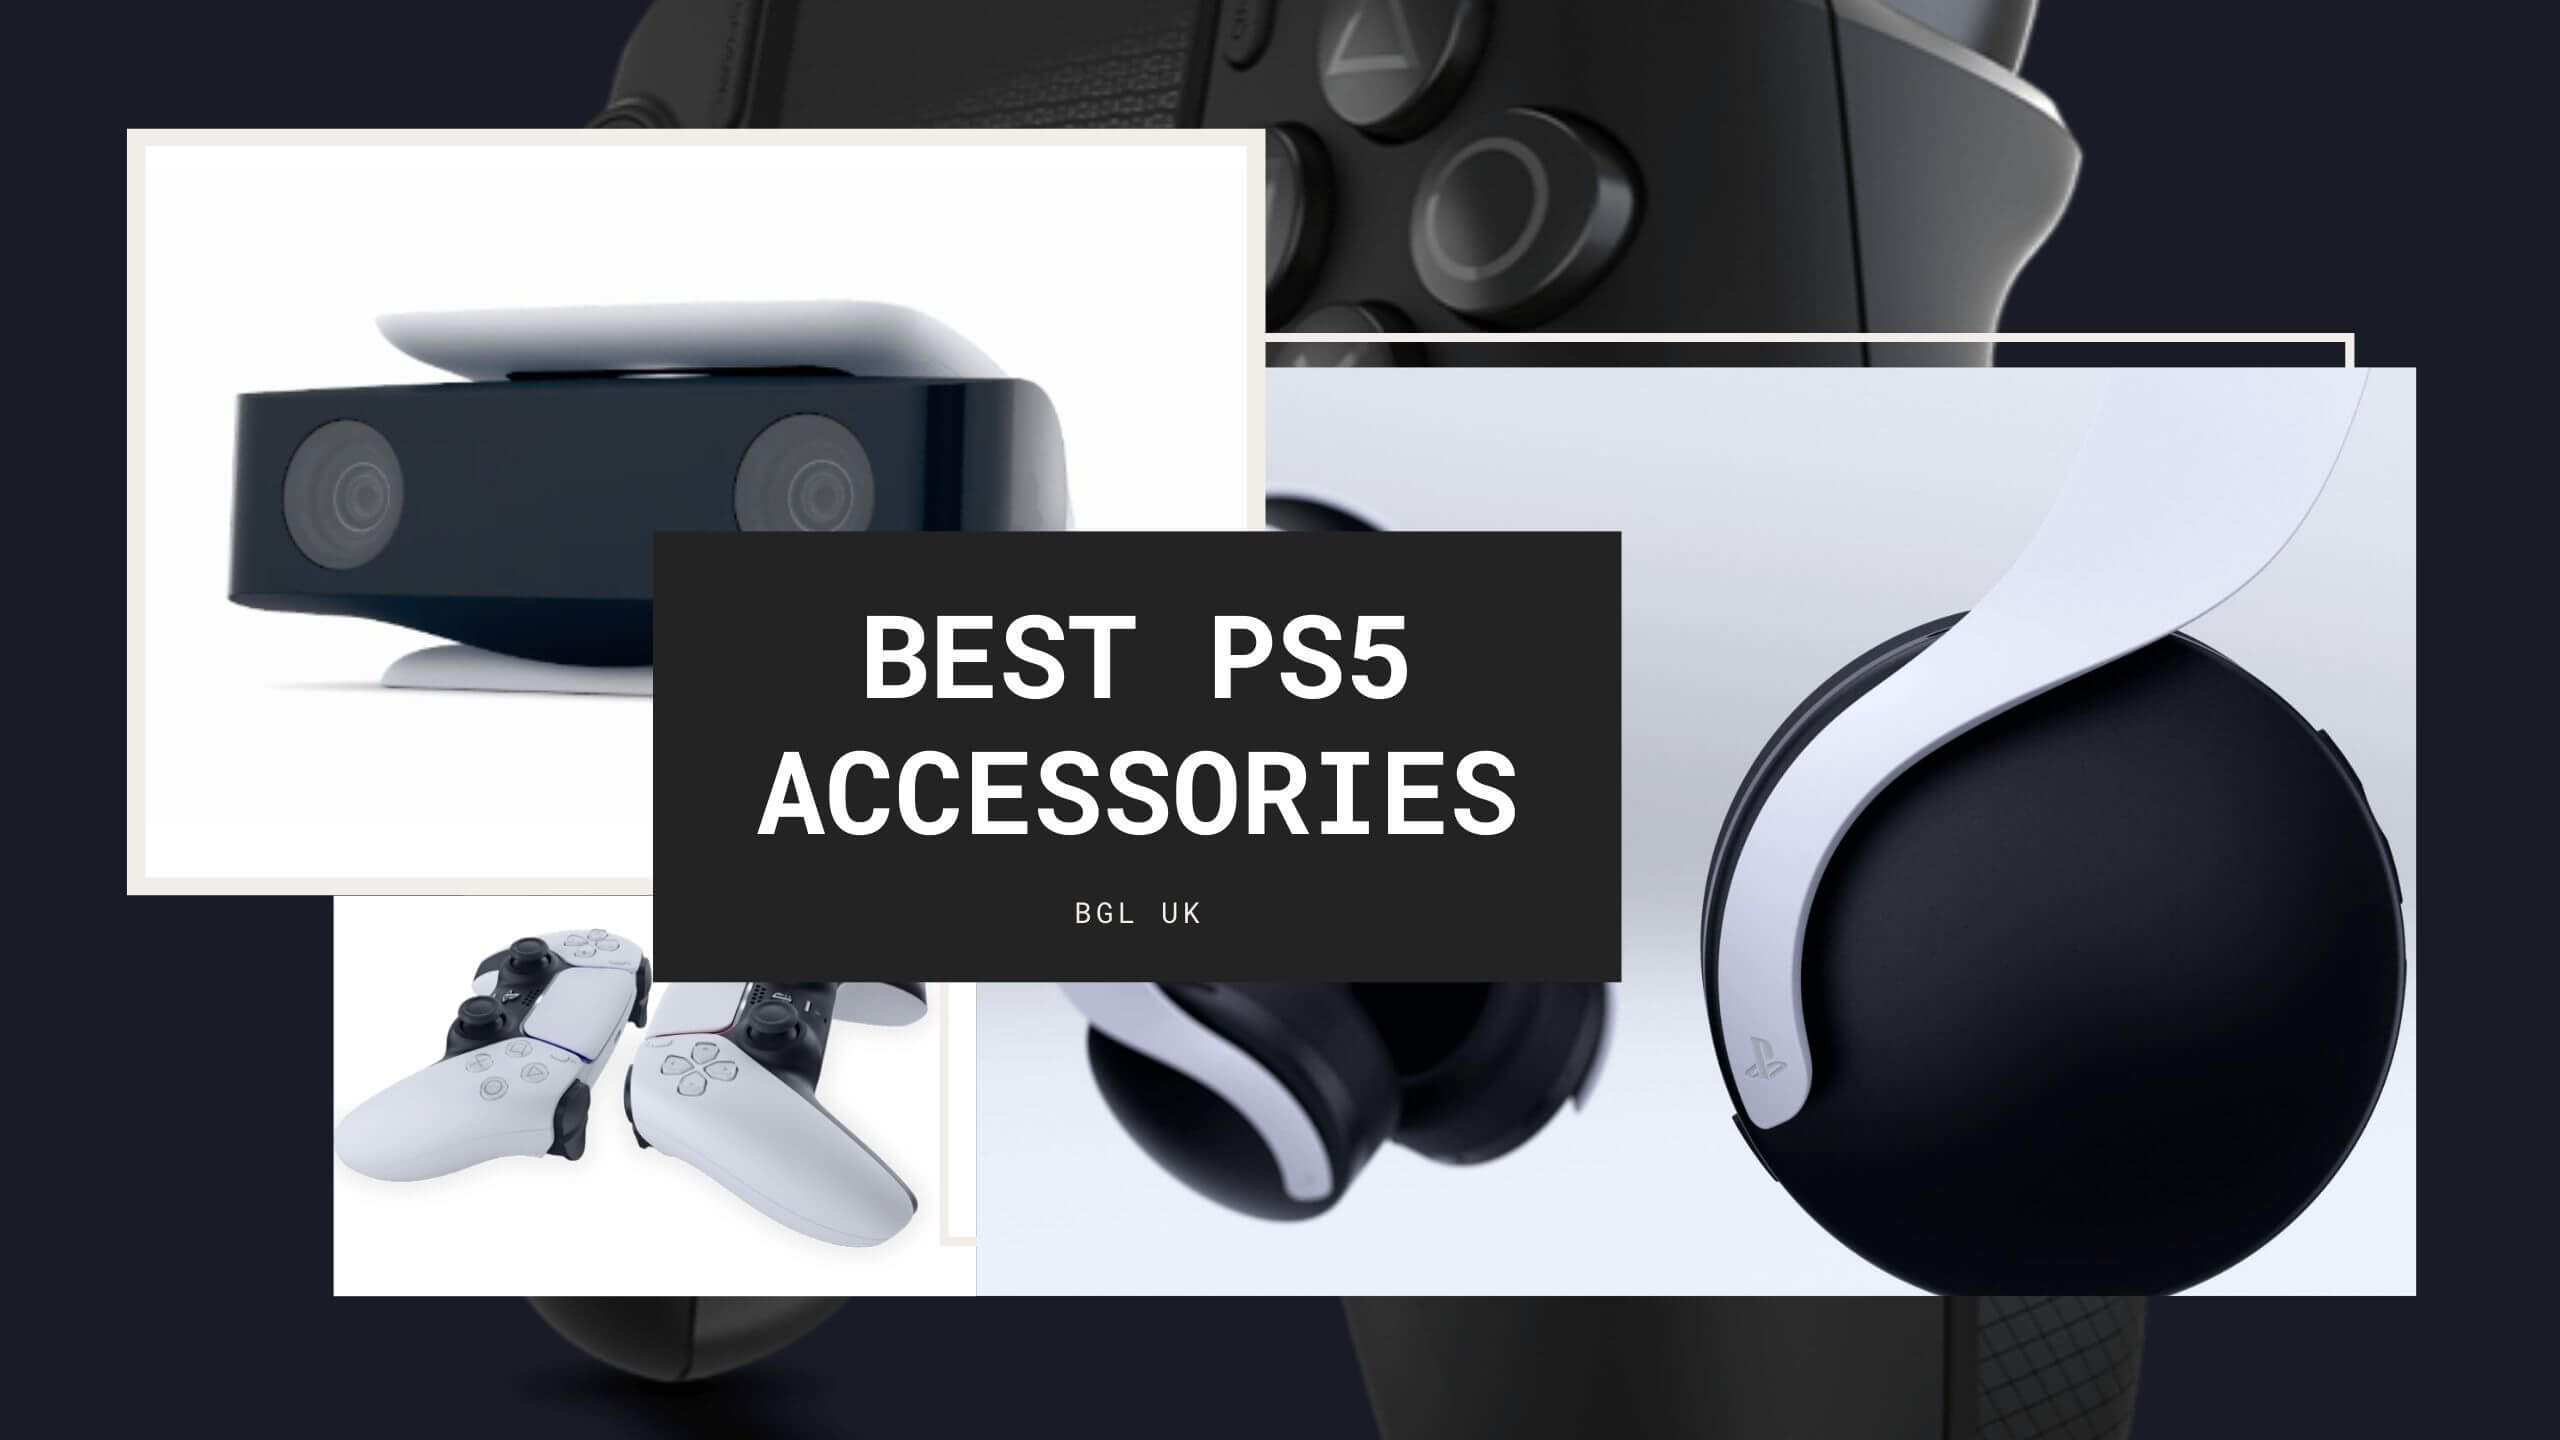 Looking for best PS5 accessories? There are bunch of really impressive PS5 and PS4 accessories that you can currently buy from the market. Just follow the below article to know the hot and top selling Playstation 5 accessories.